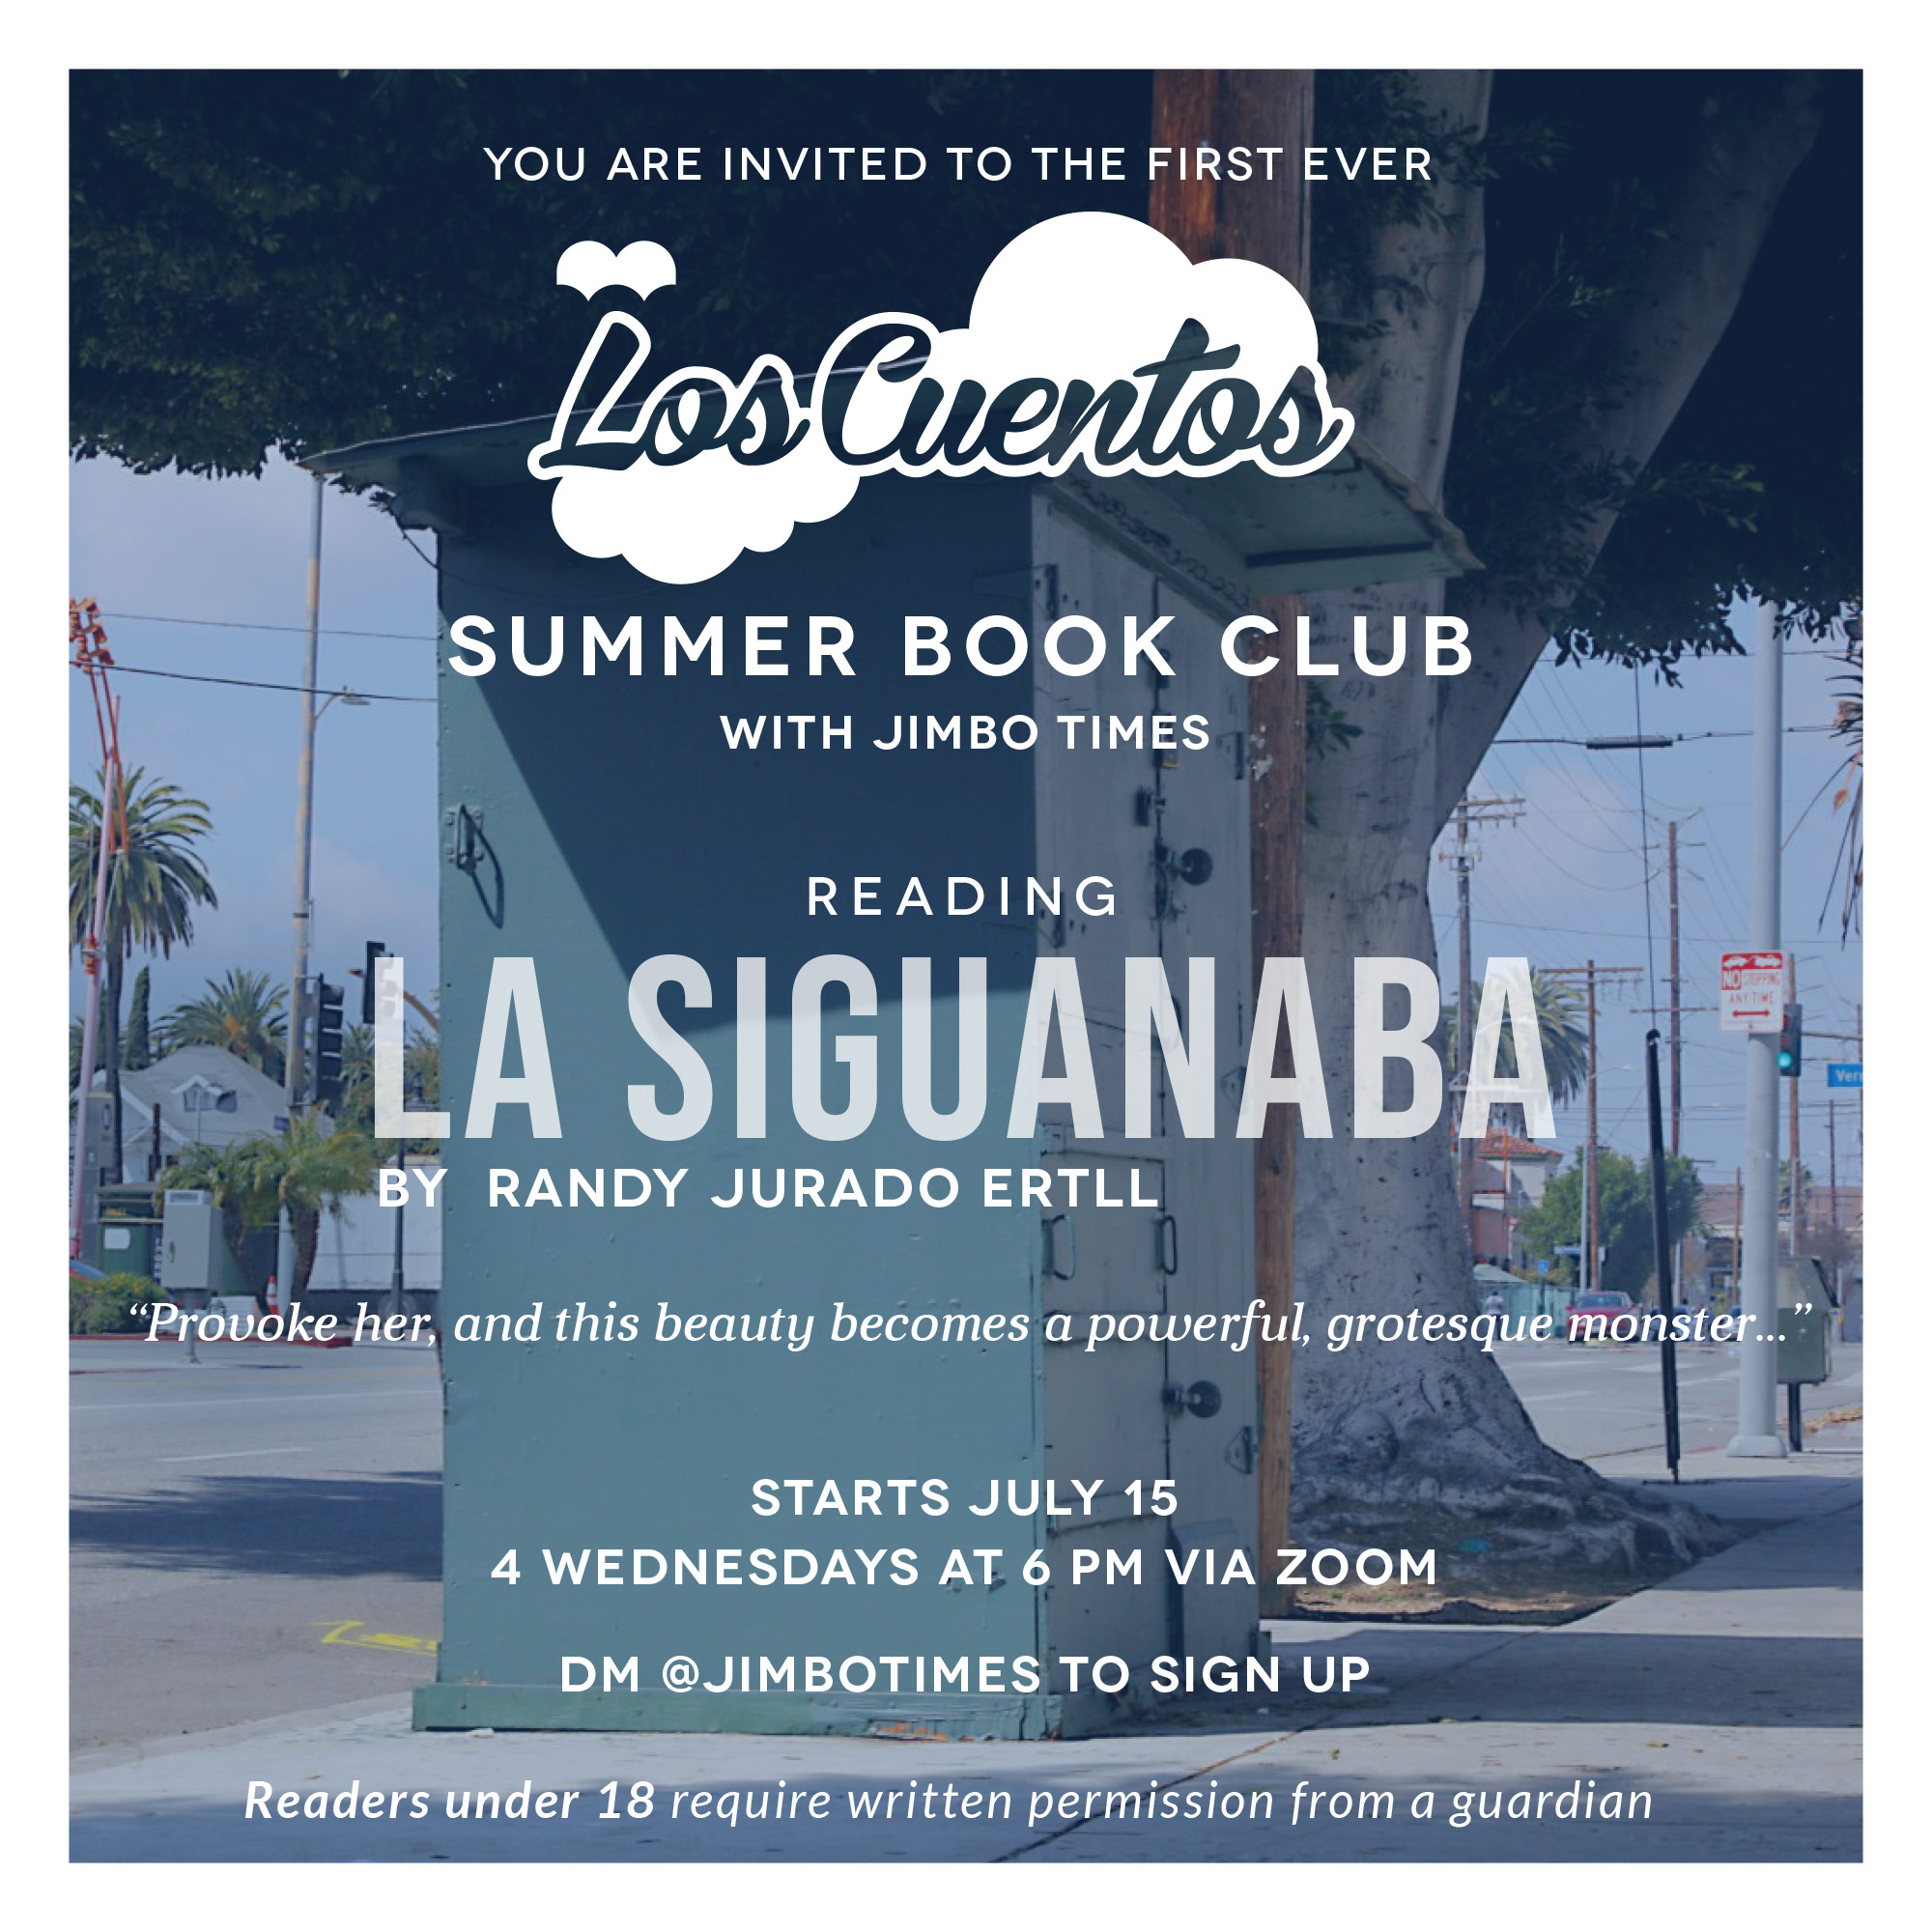 The official flyer for the first ever Los Cuentos Summer Book Club